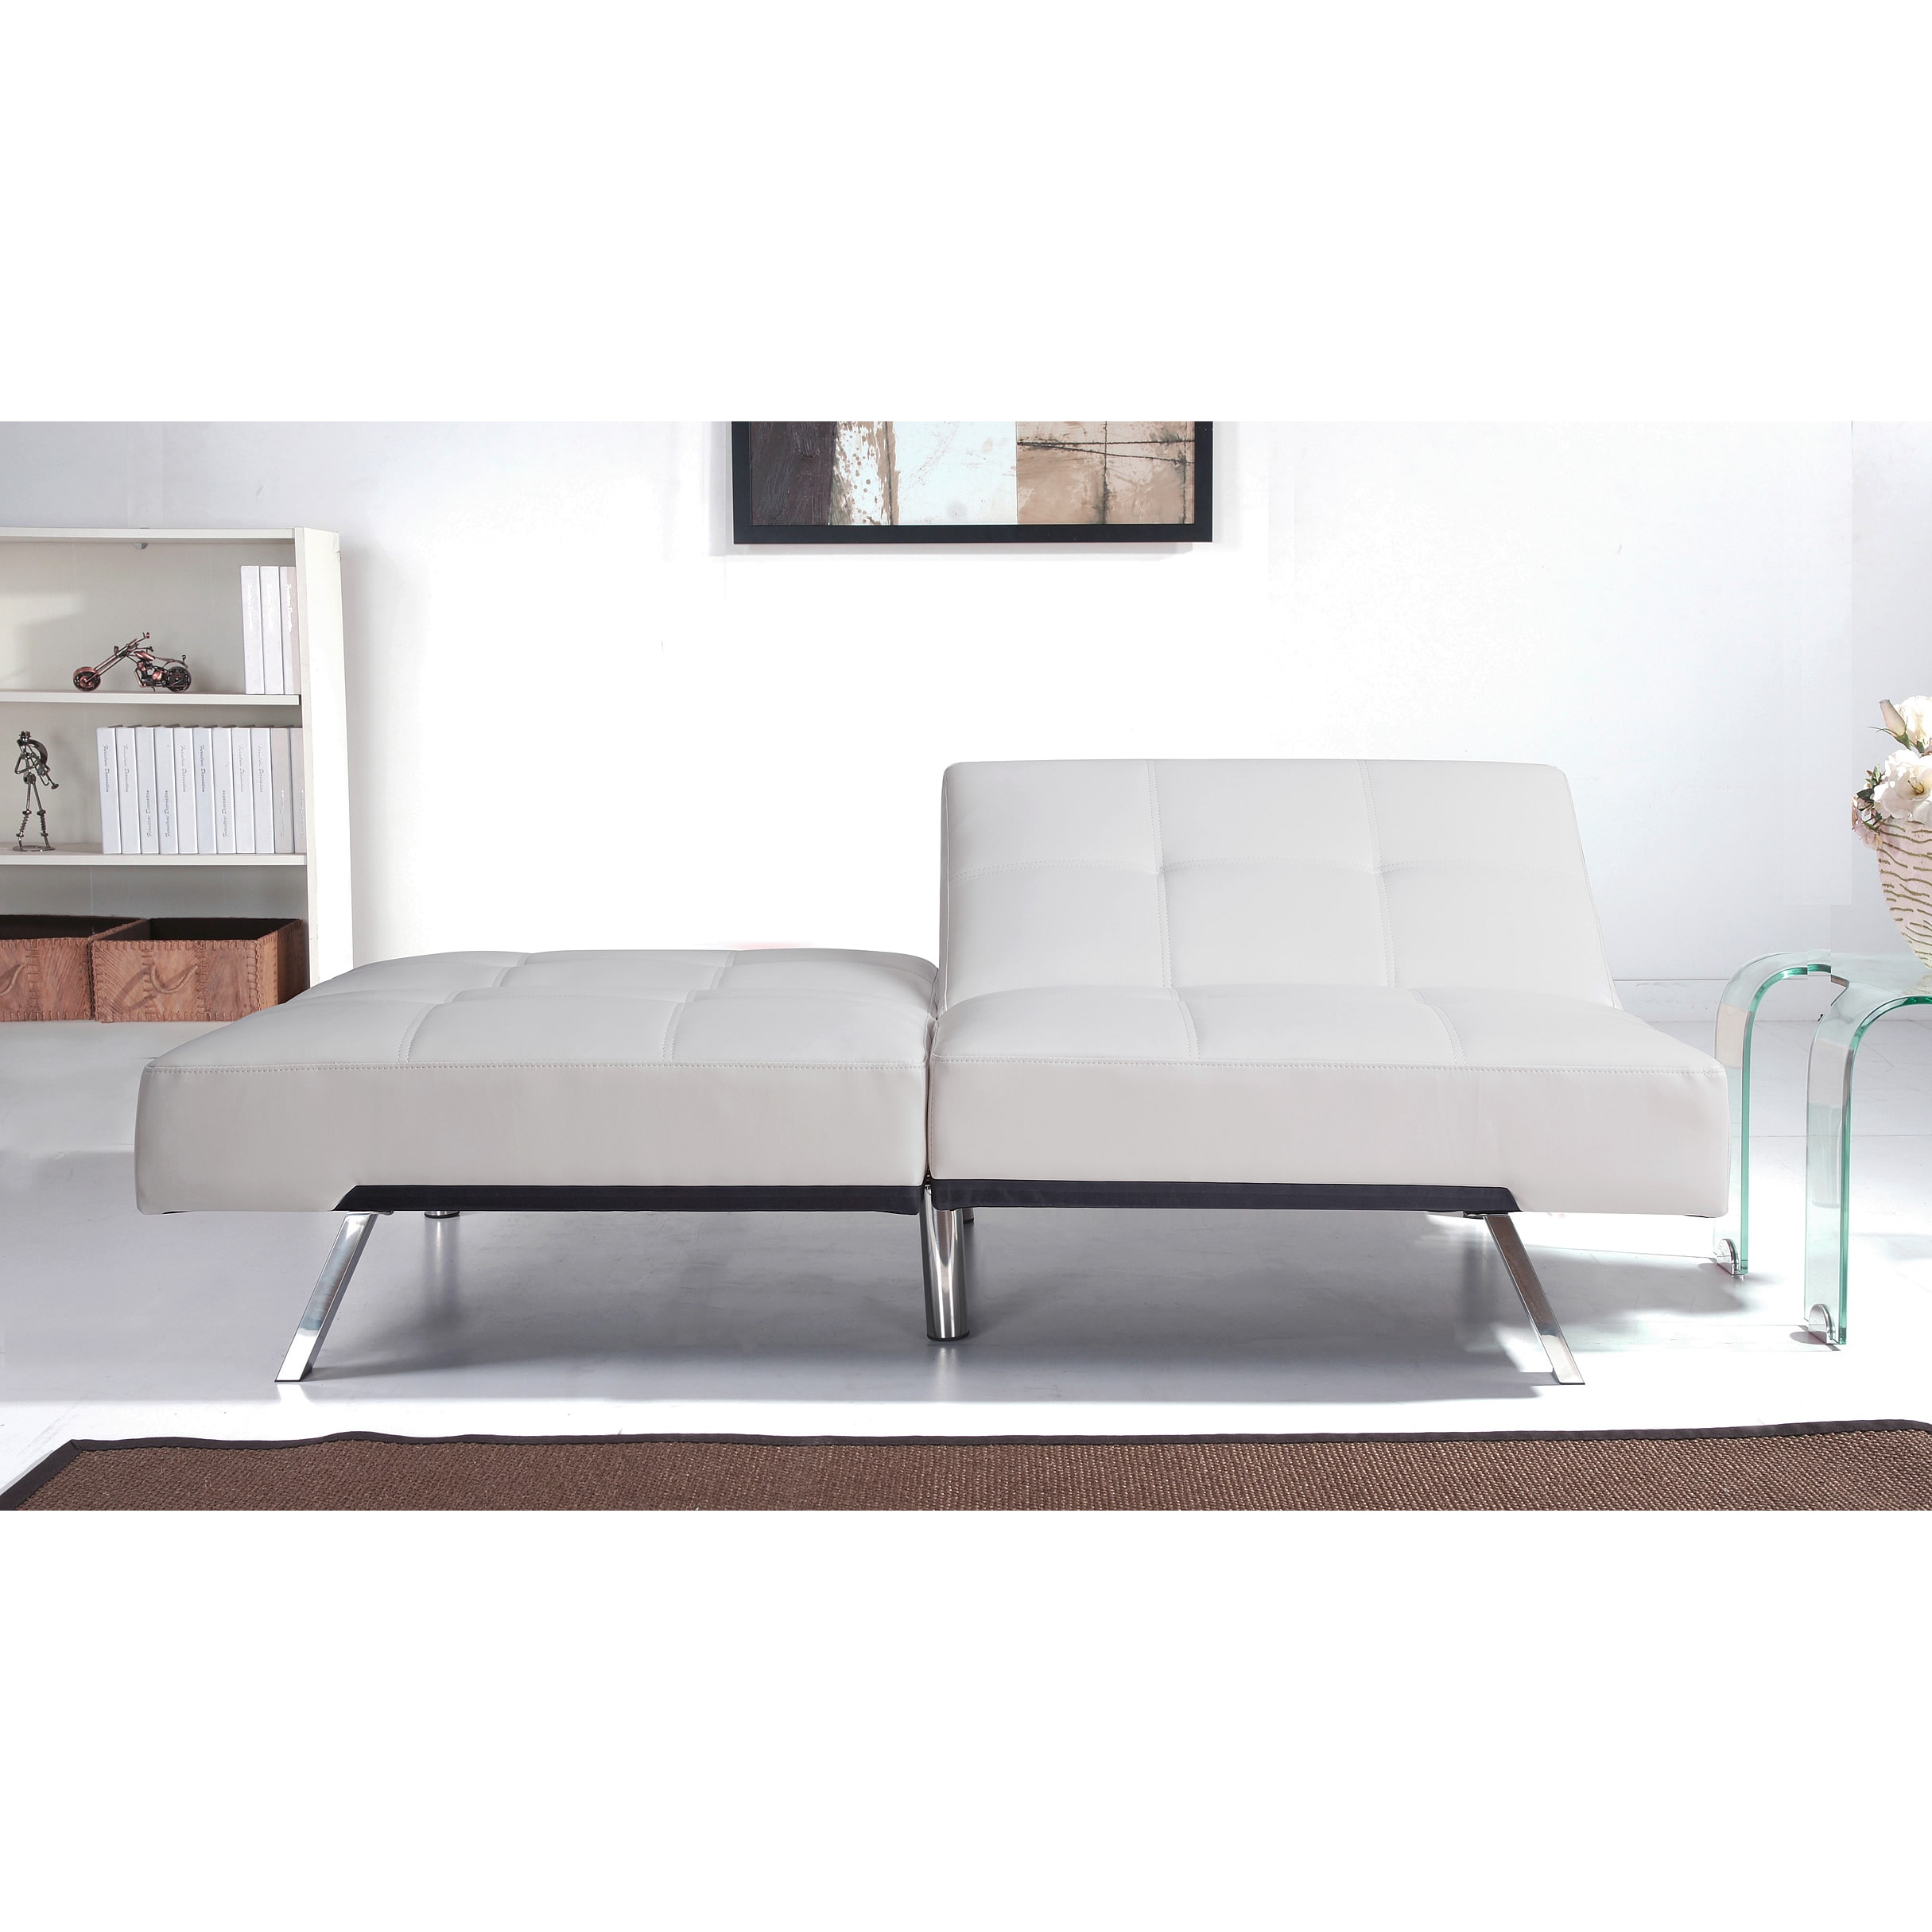 Abbyson Aspen Ivory Bonded Leather Foldable Futon Sleeper Sofa On Free Shipping Today 9723558